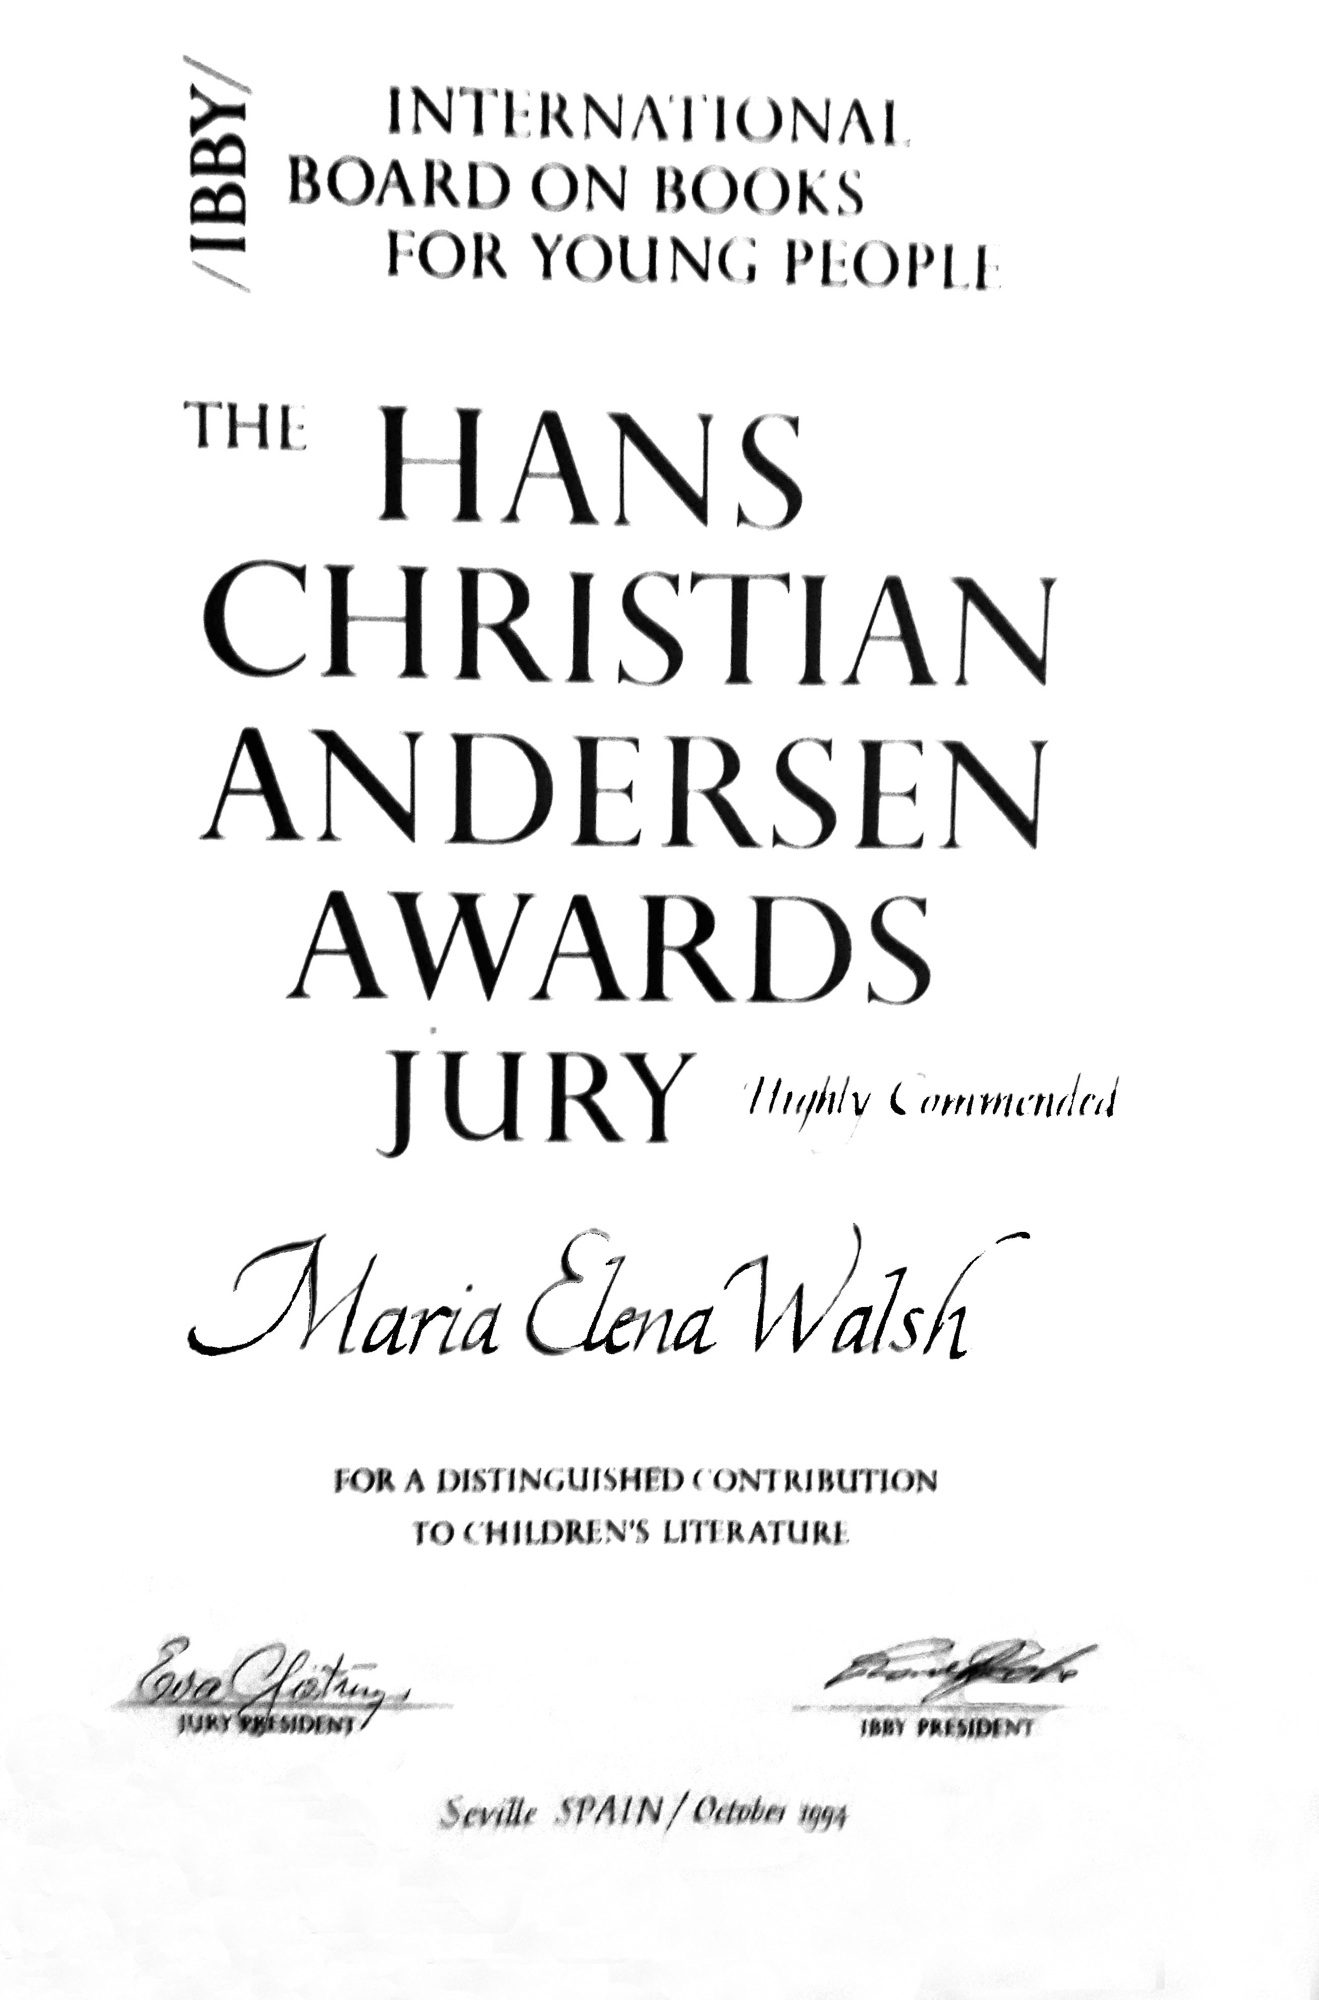 1991 - Highly Commended - Premio Christian Andersen